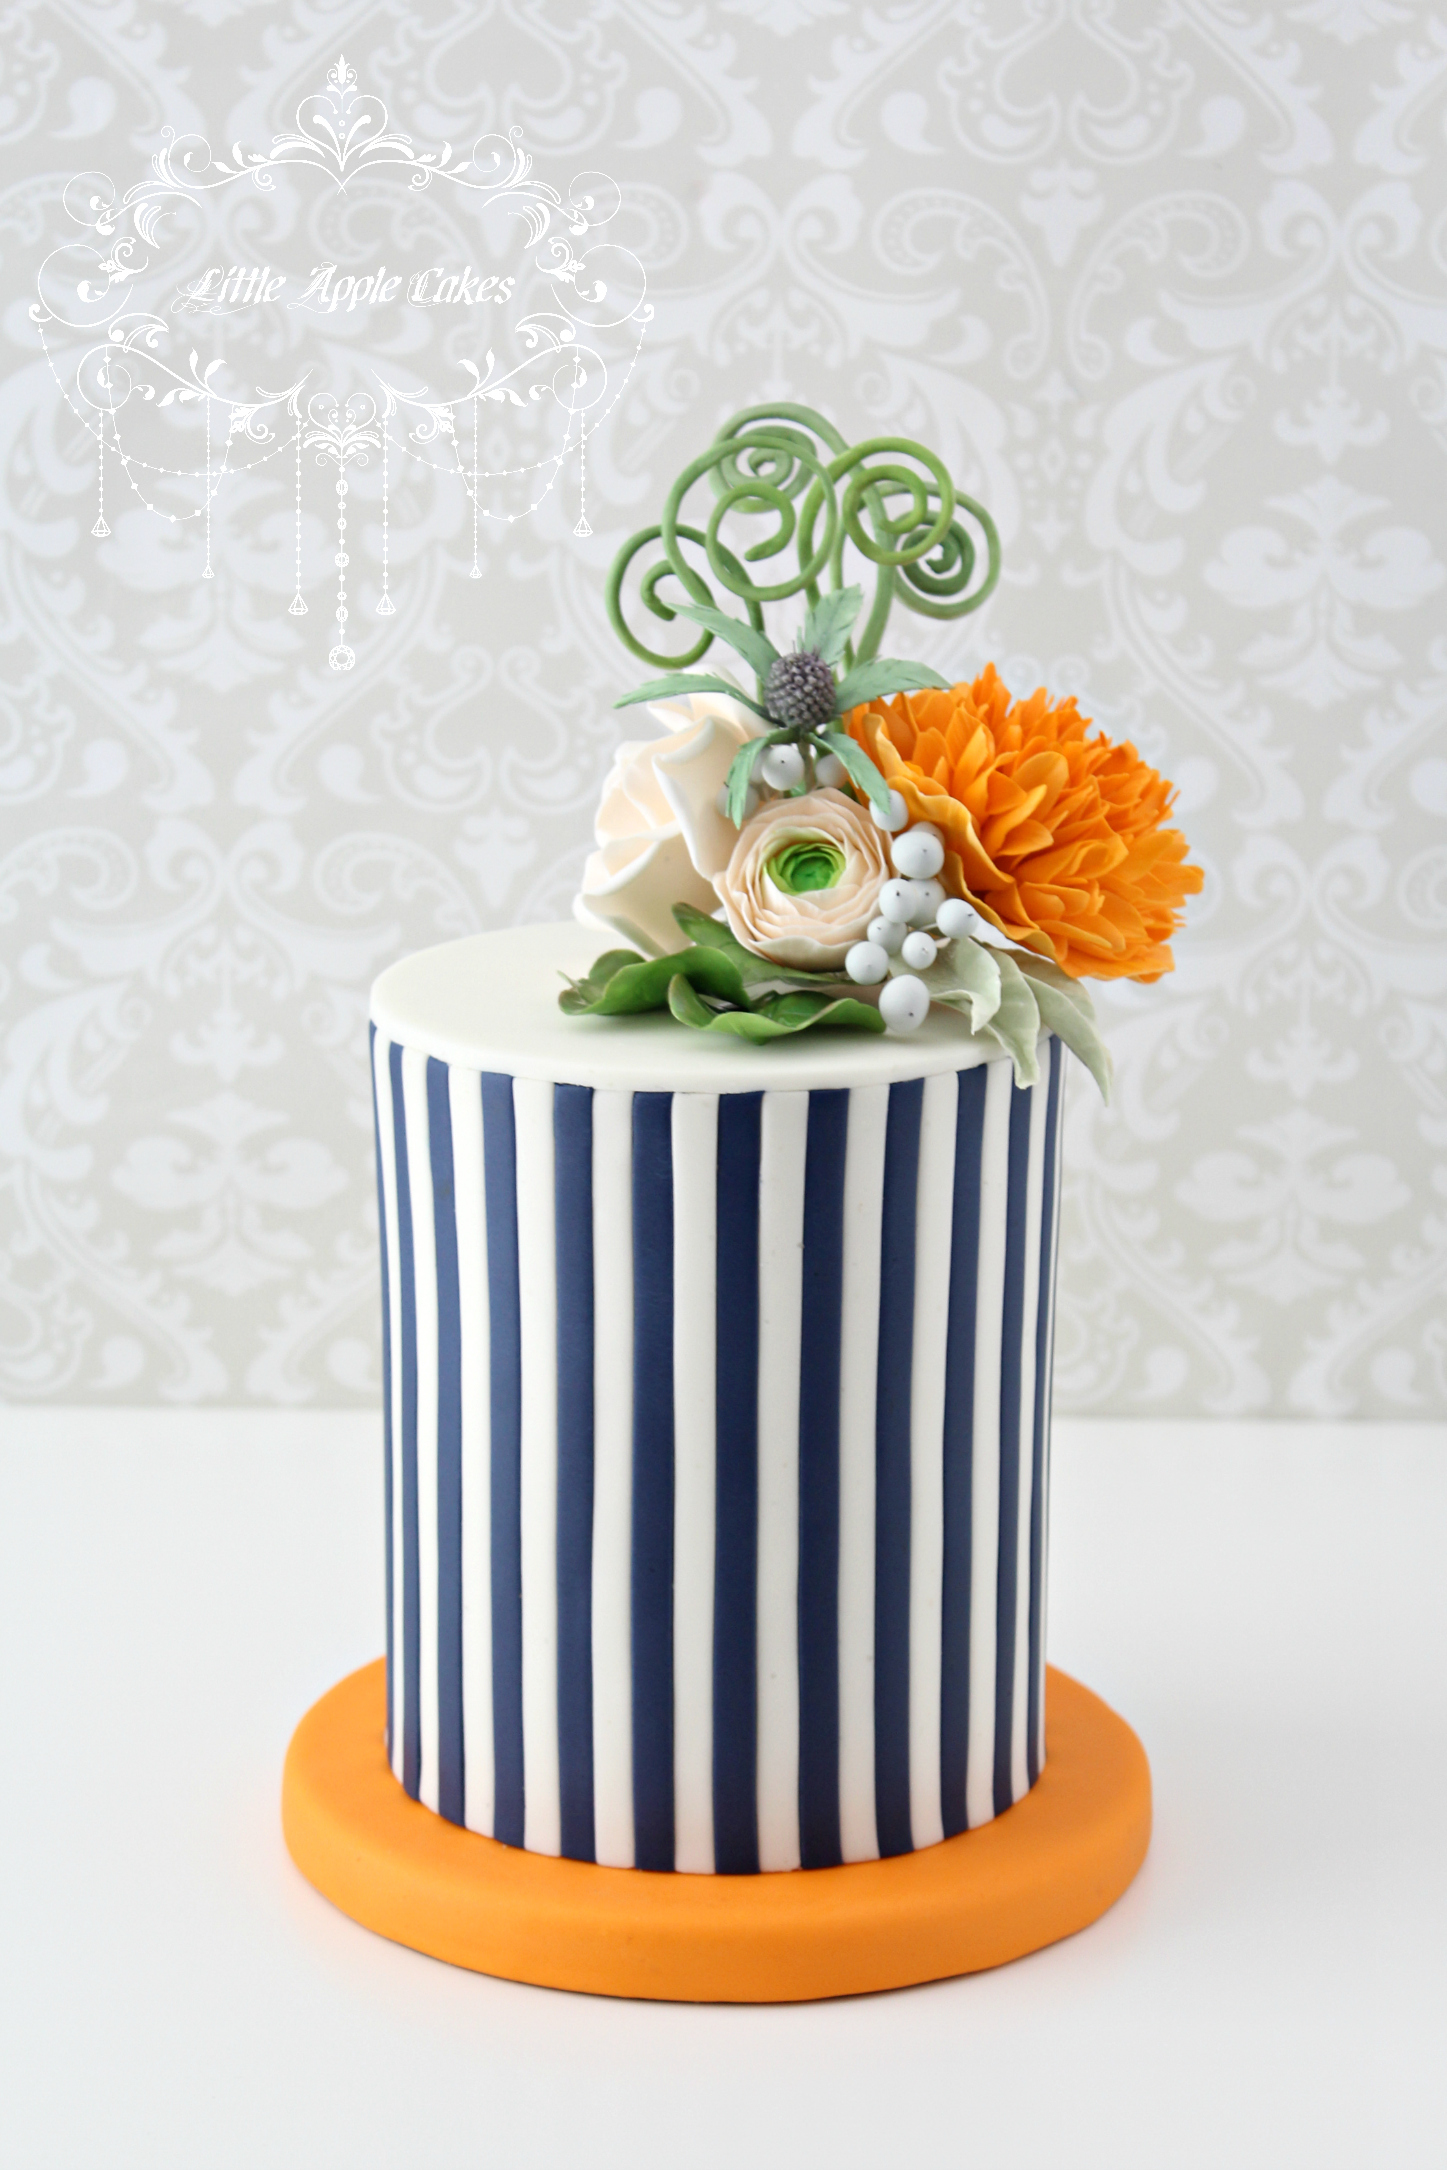 Blue & White Striped Wedding with Sugar Flowers